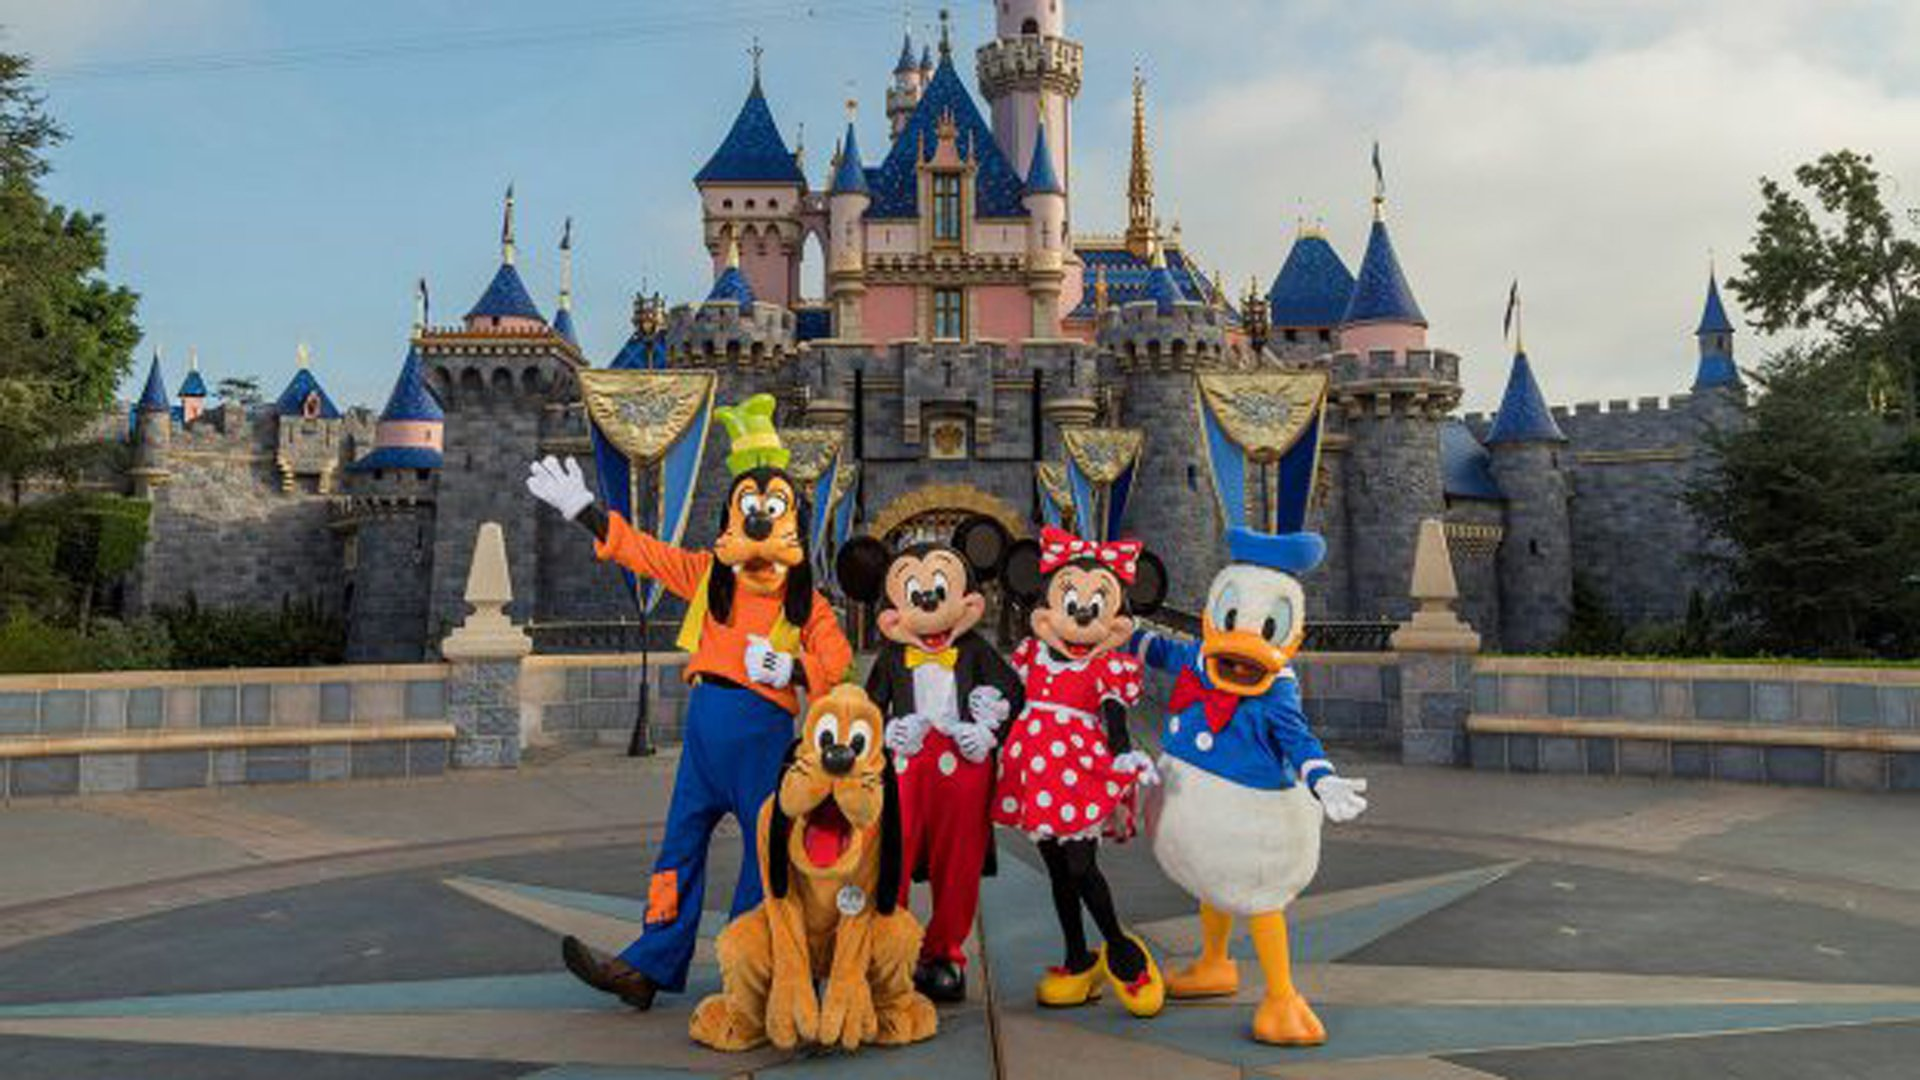 Disney characters are seen in front of Sleeping Beauty's Castle at Disneyland in a photo released by Disney on Jan. 7, 2020.